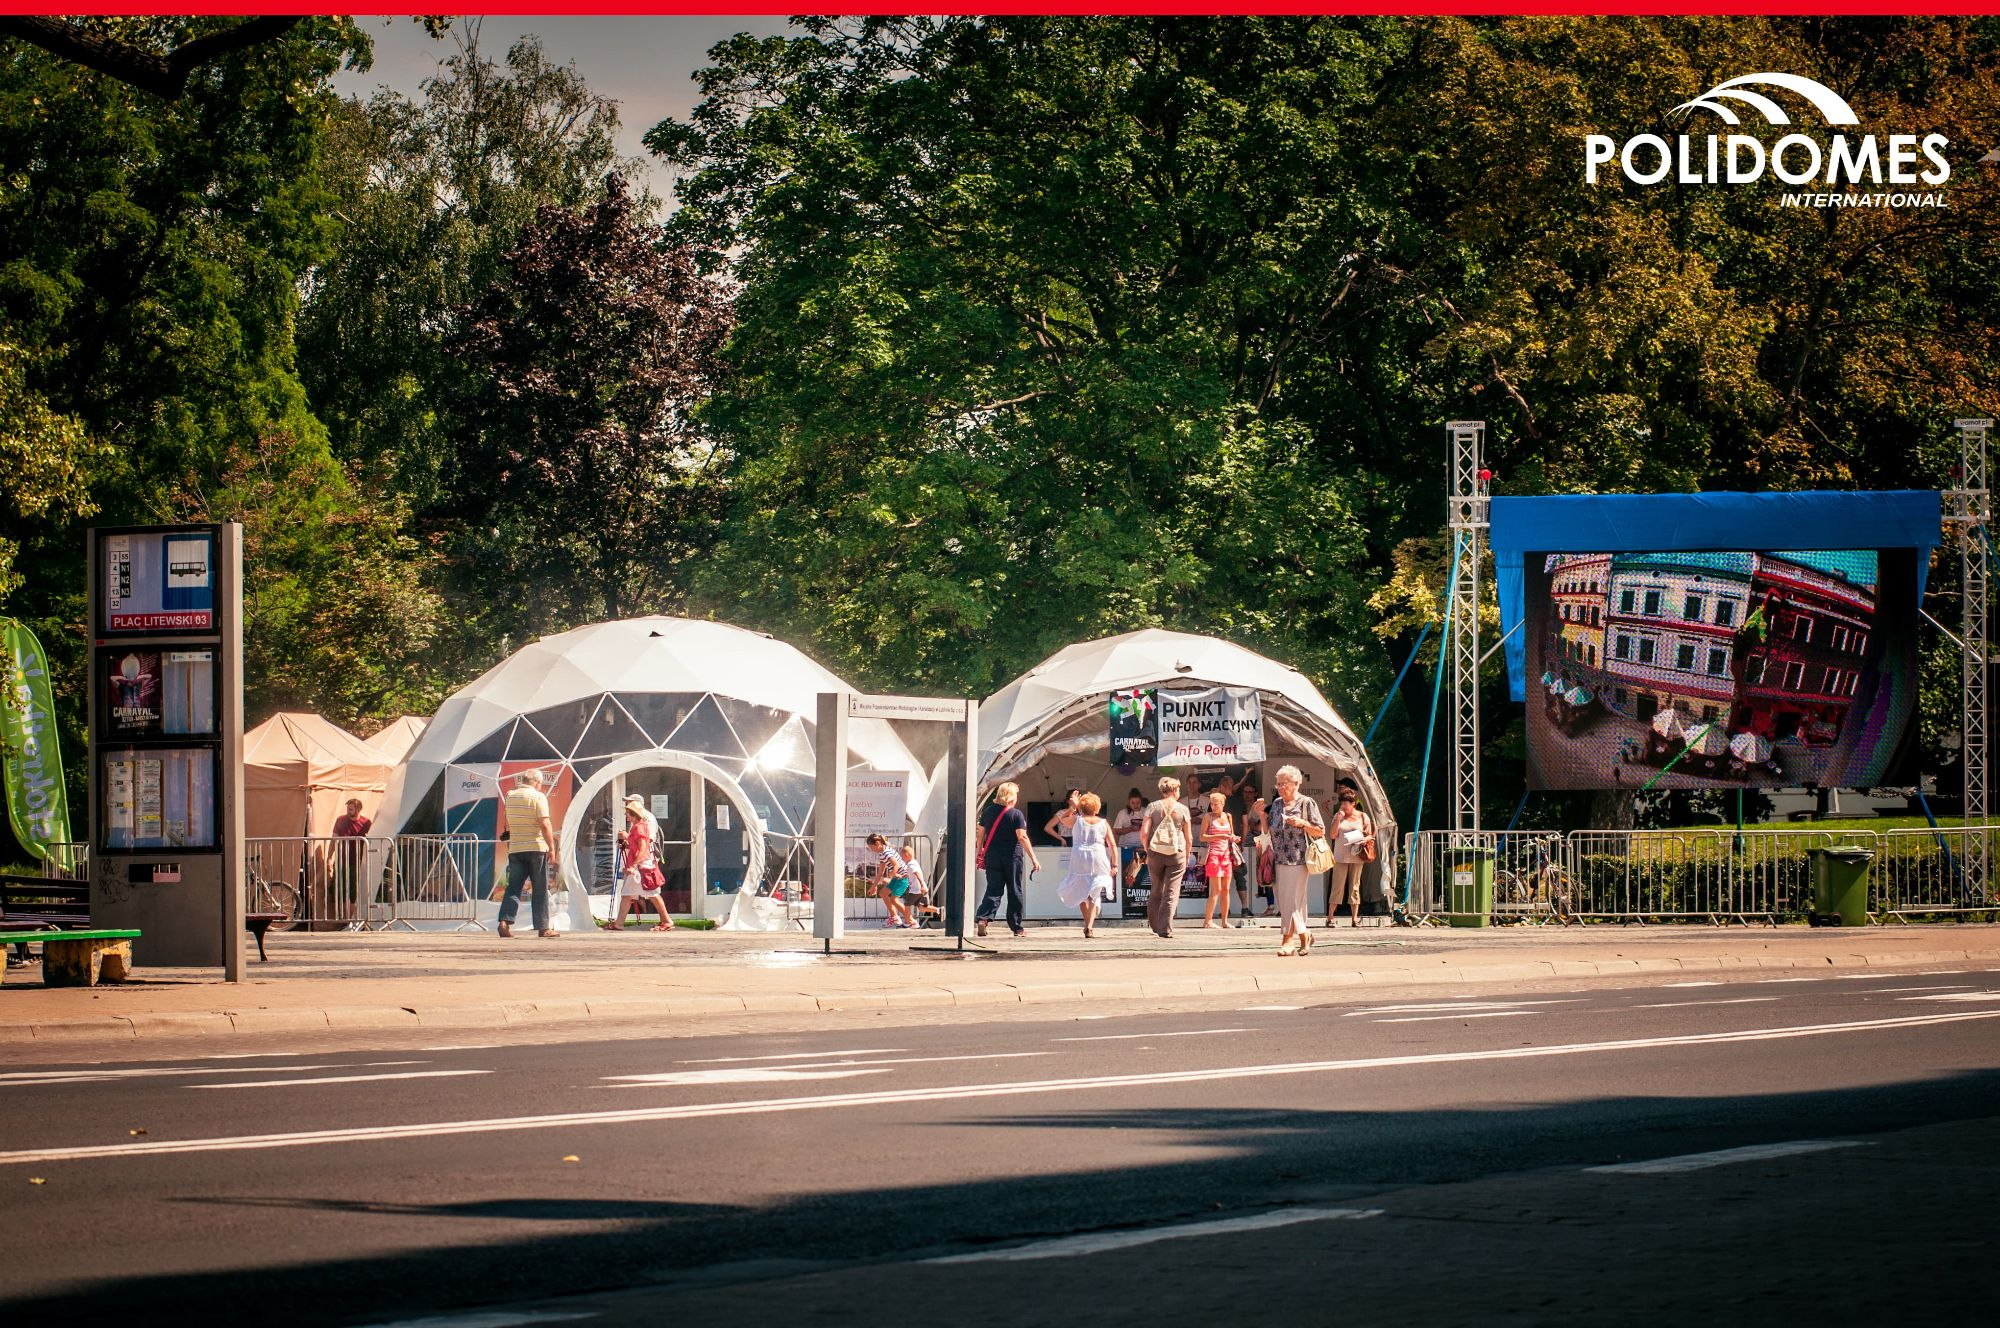 Polidomes festival tents